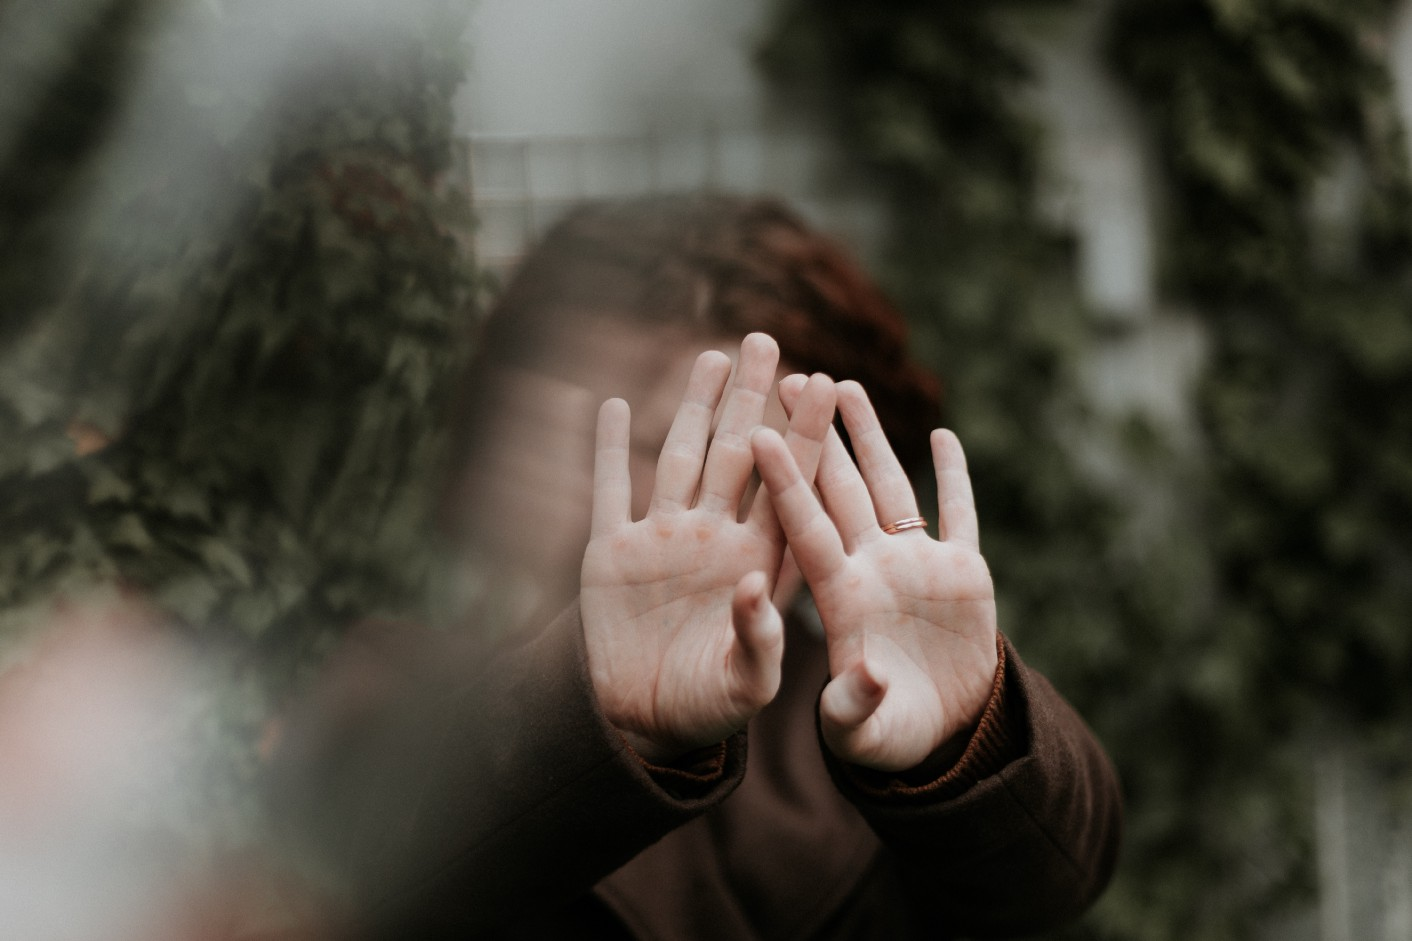 An image of a woman with her hands up, covering her face.